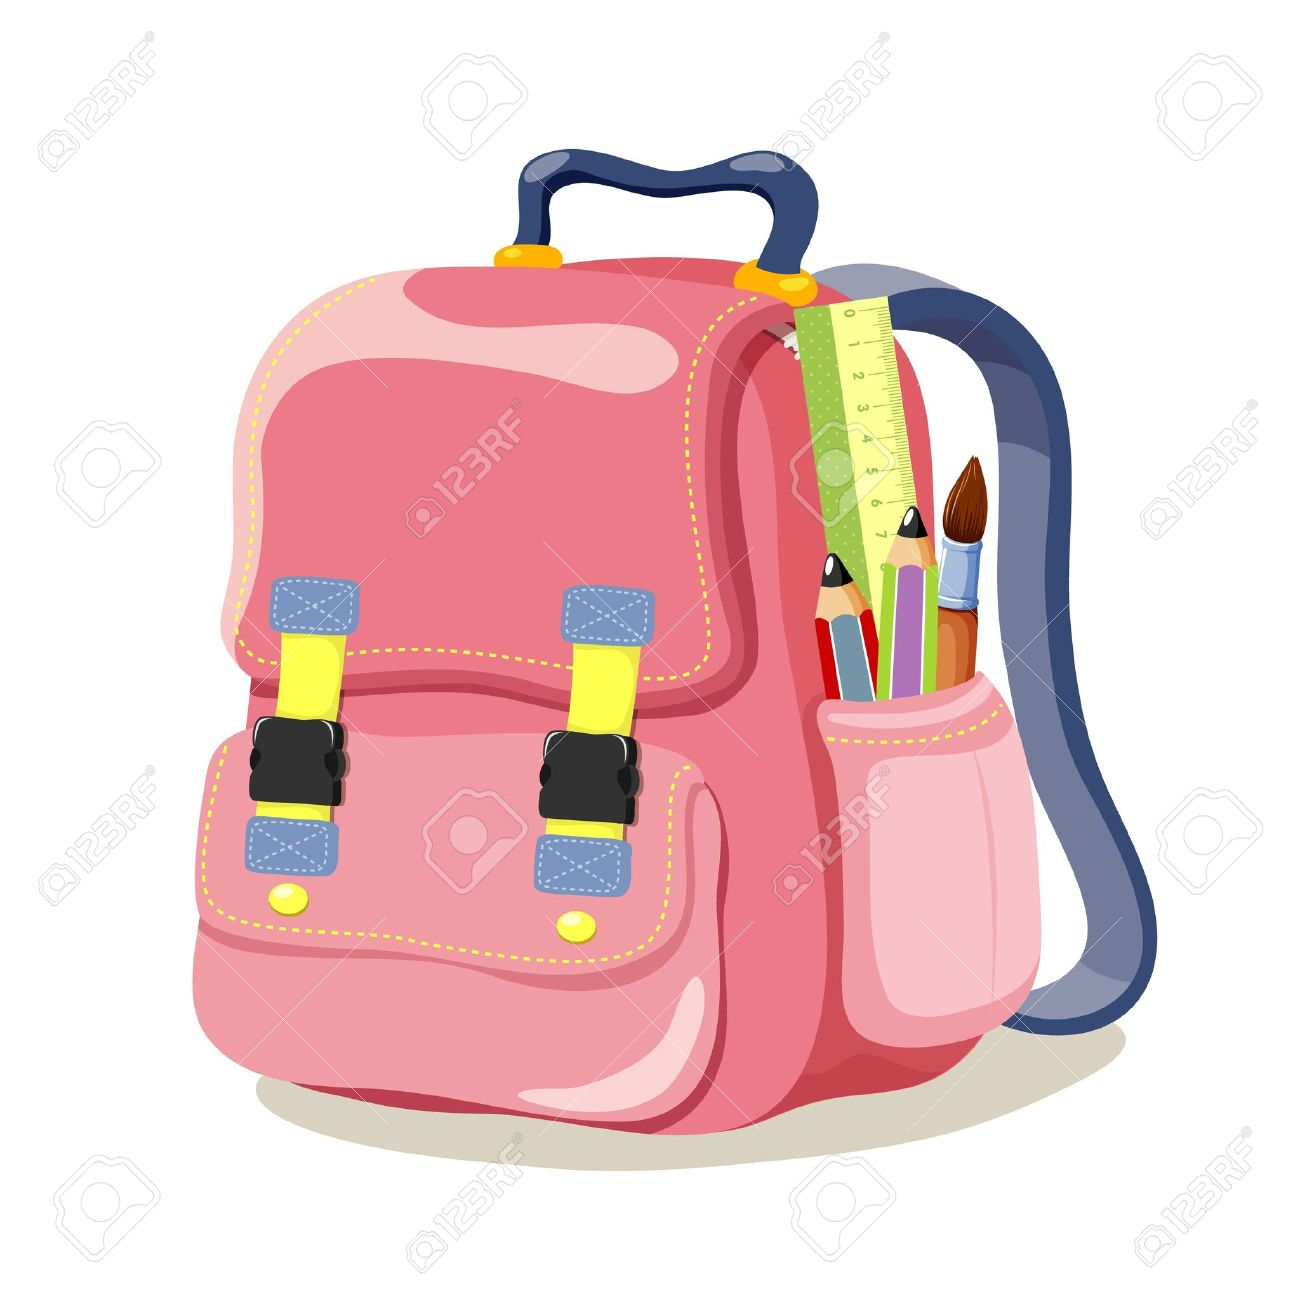 2cc984d476e School Backpack Royalty Free Cliparts, Vectors, And Stock ...